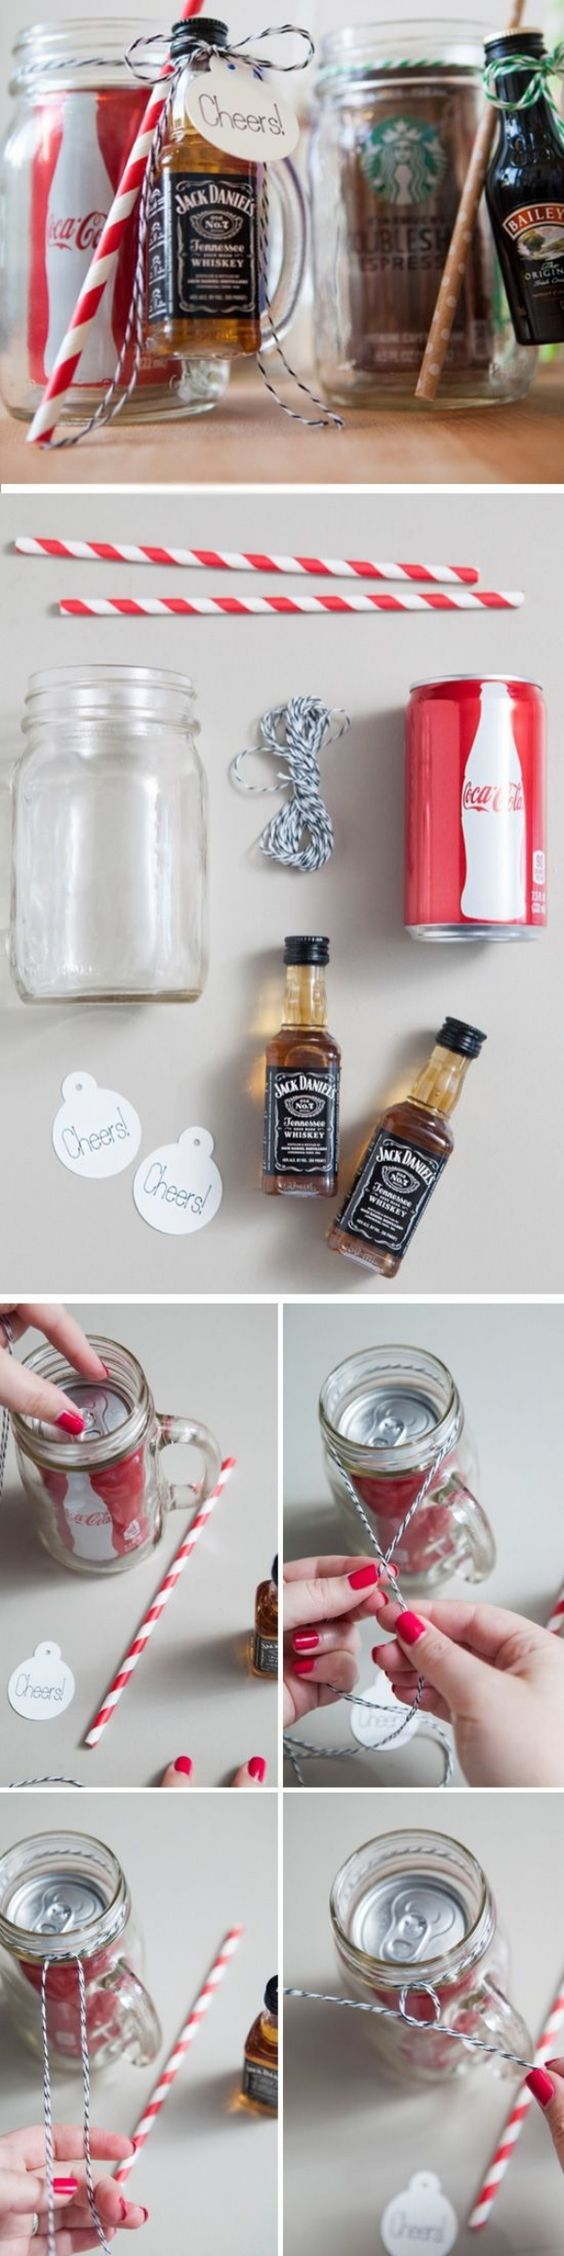 "45 Homemade Christmas Gift Ideas to make him say ""WOW"":"